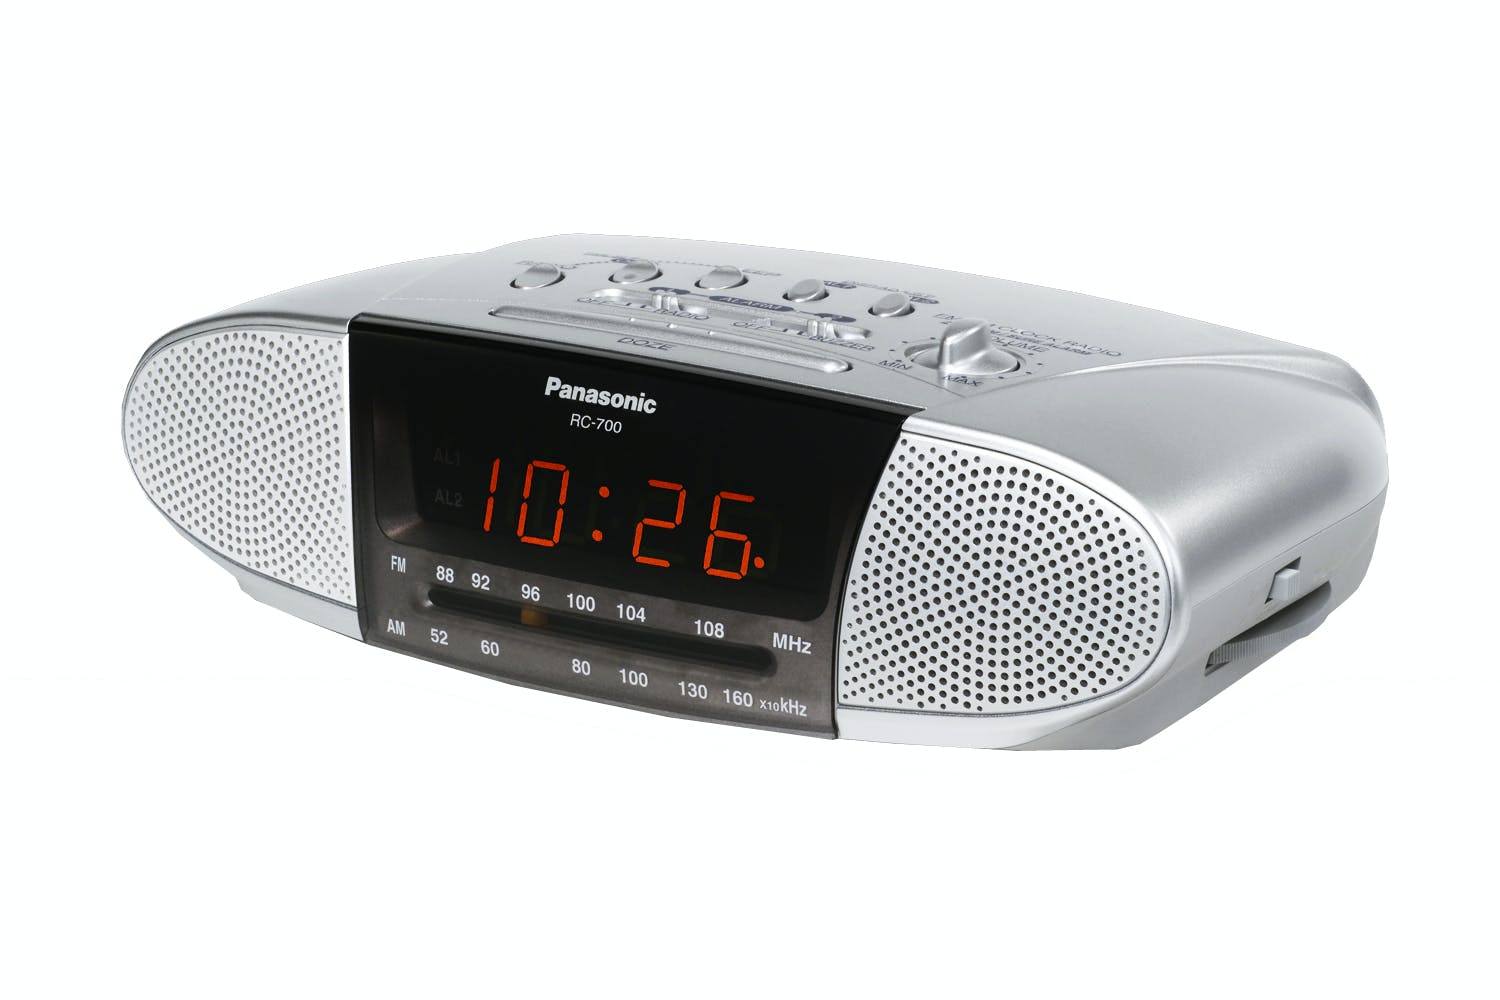 panasonic alarm clock radio harvey norman new zealand. Black Bedroom Furniture Sets. Home Design Ideas